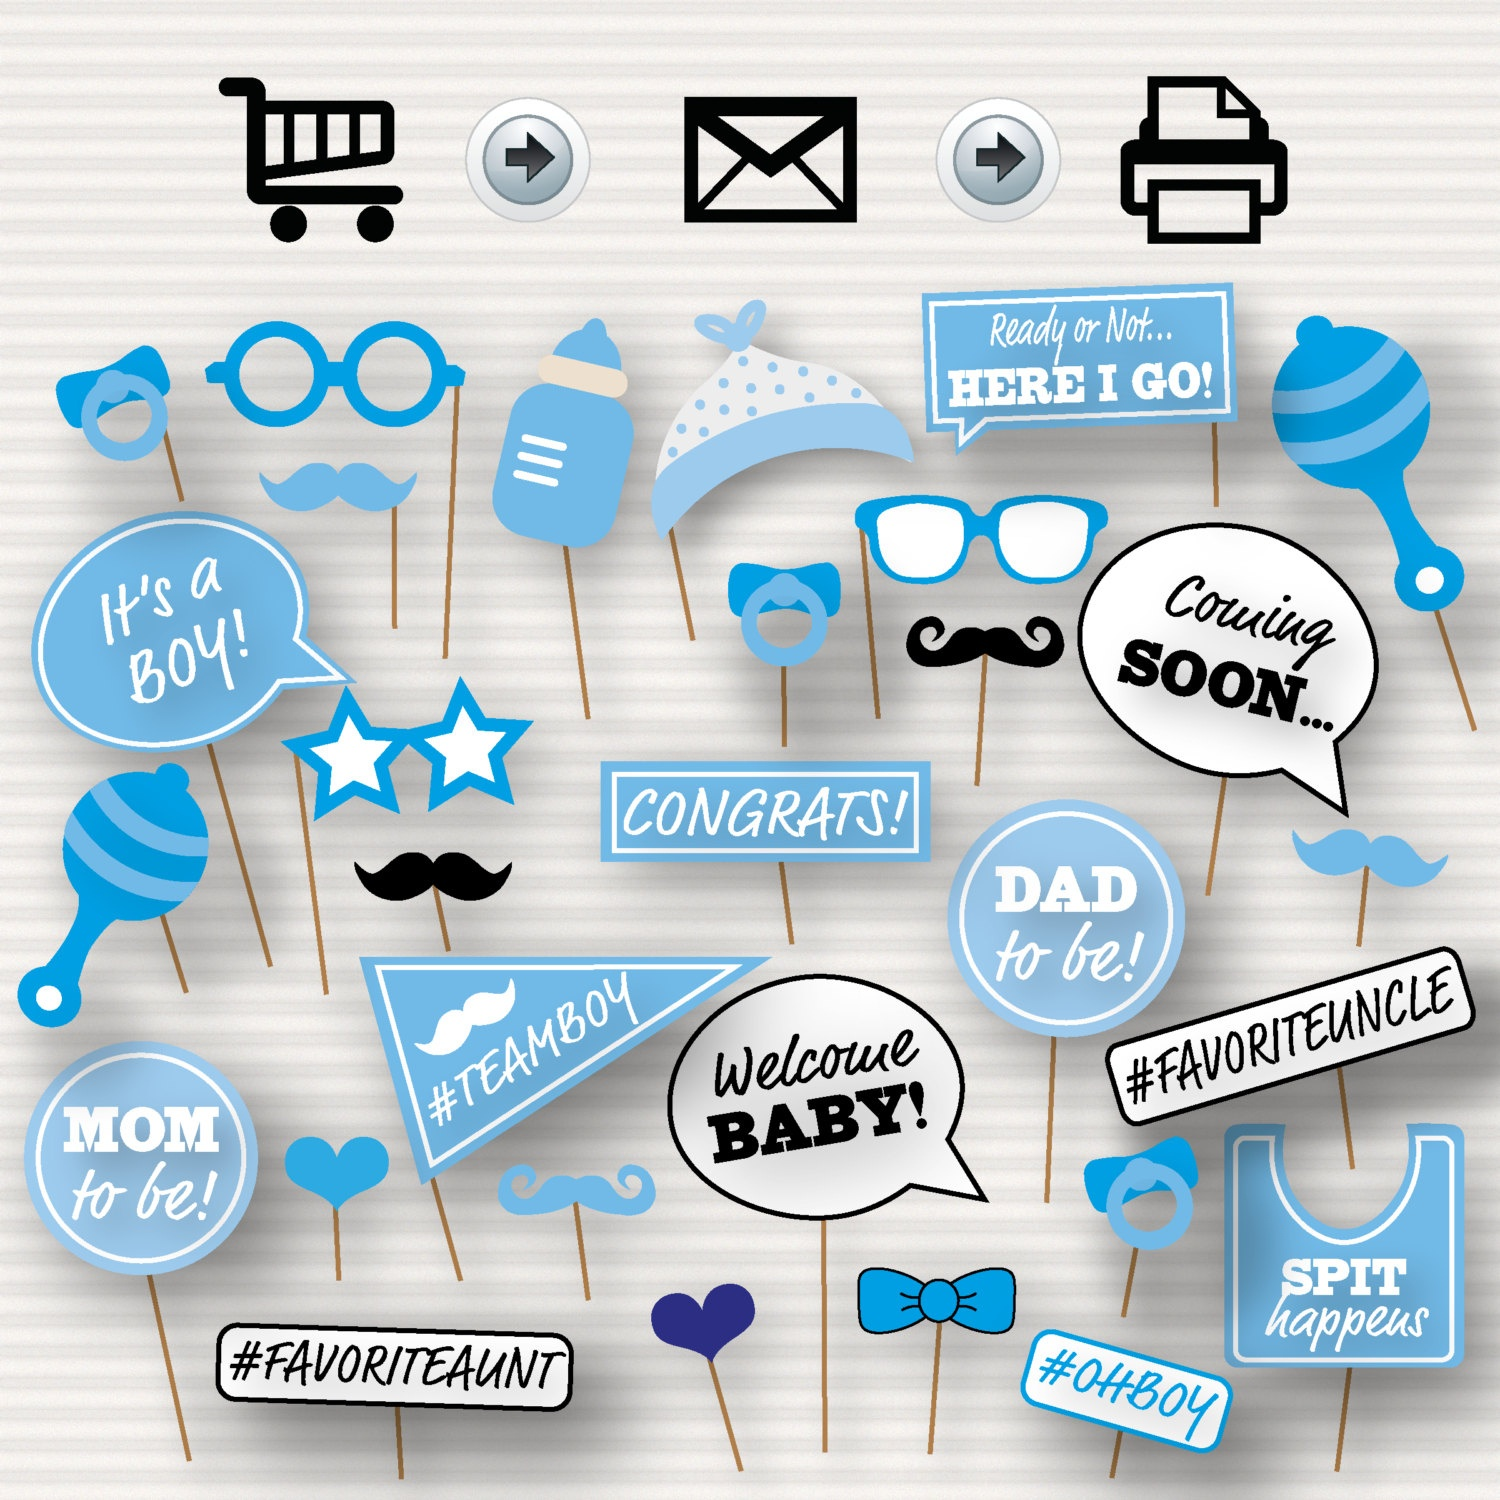 Baby Shower Printable Photo Booth Props Baby Shower   Etsy - Free Printable Boy Baby Shower Photo Booth Props